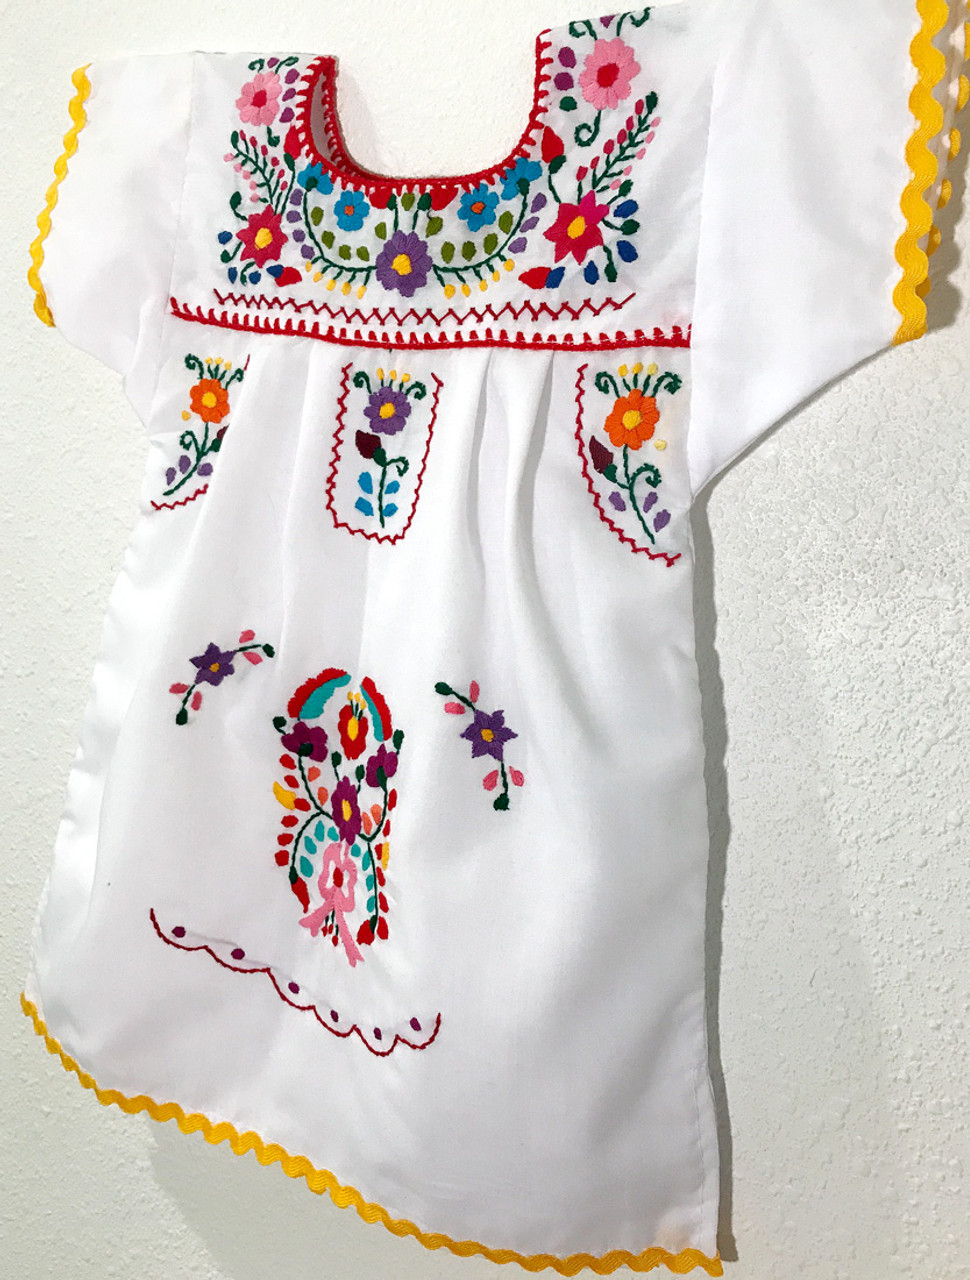 4420212c12 Girls Mexican Embroidered Dress Size 12 Months - Yellow - My Mercado  Mexican Imports